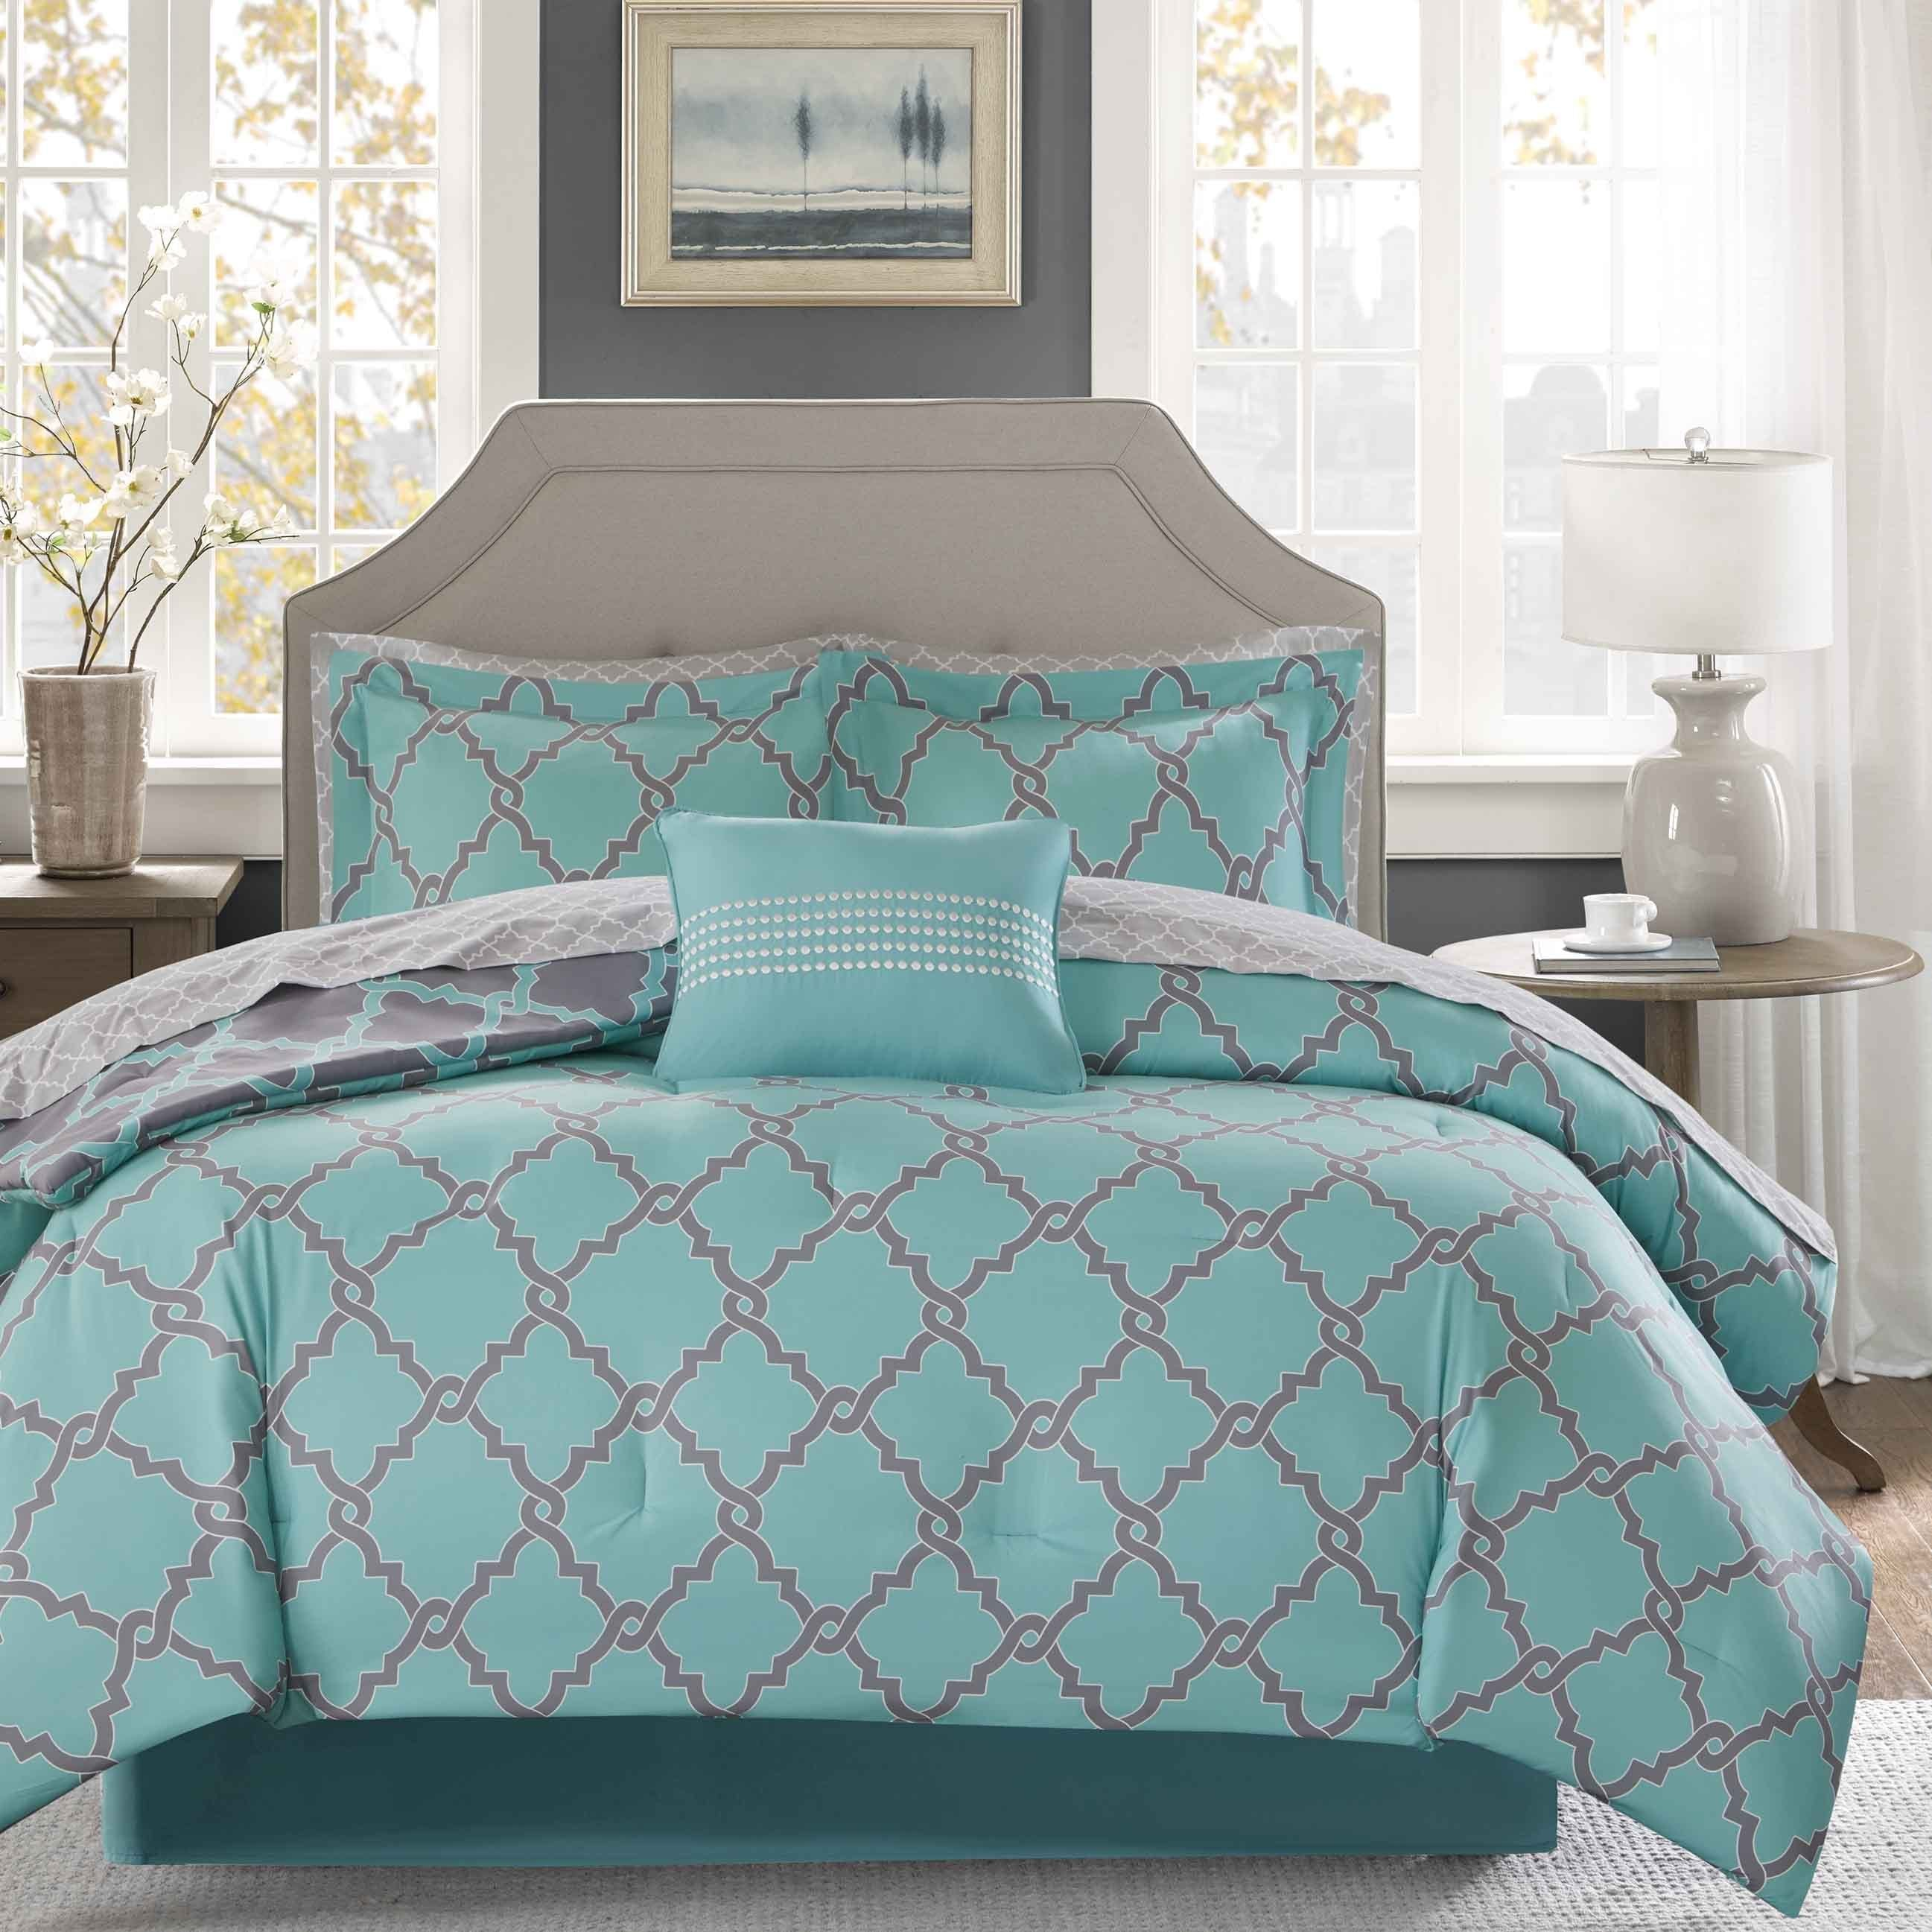 with your wake bank bedroom teen pin sets bed on best chic sophisticated shopping frankie dress set com bedding collection the up comforter left overstock prices